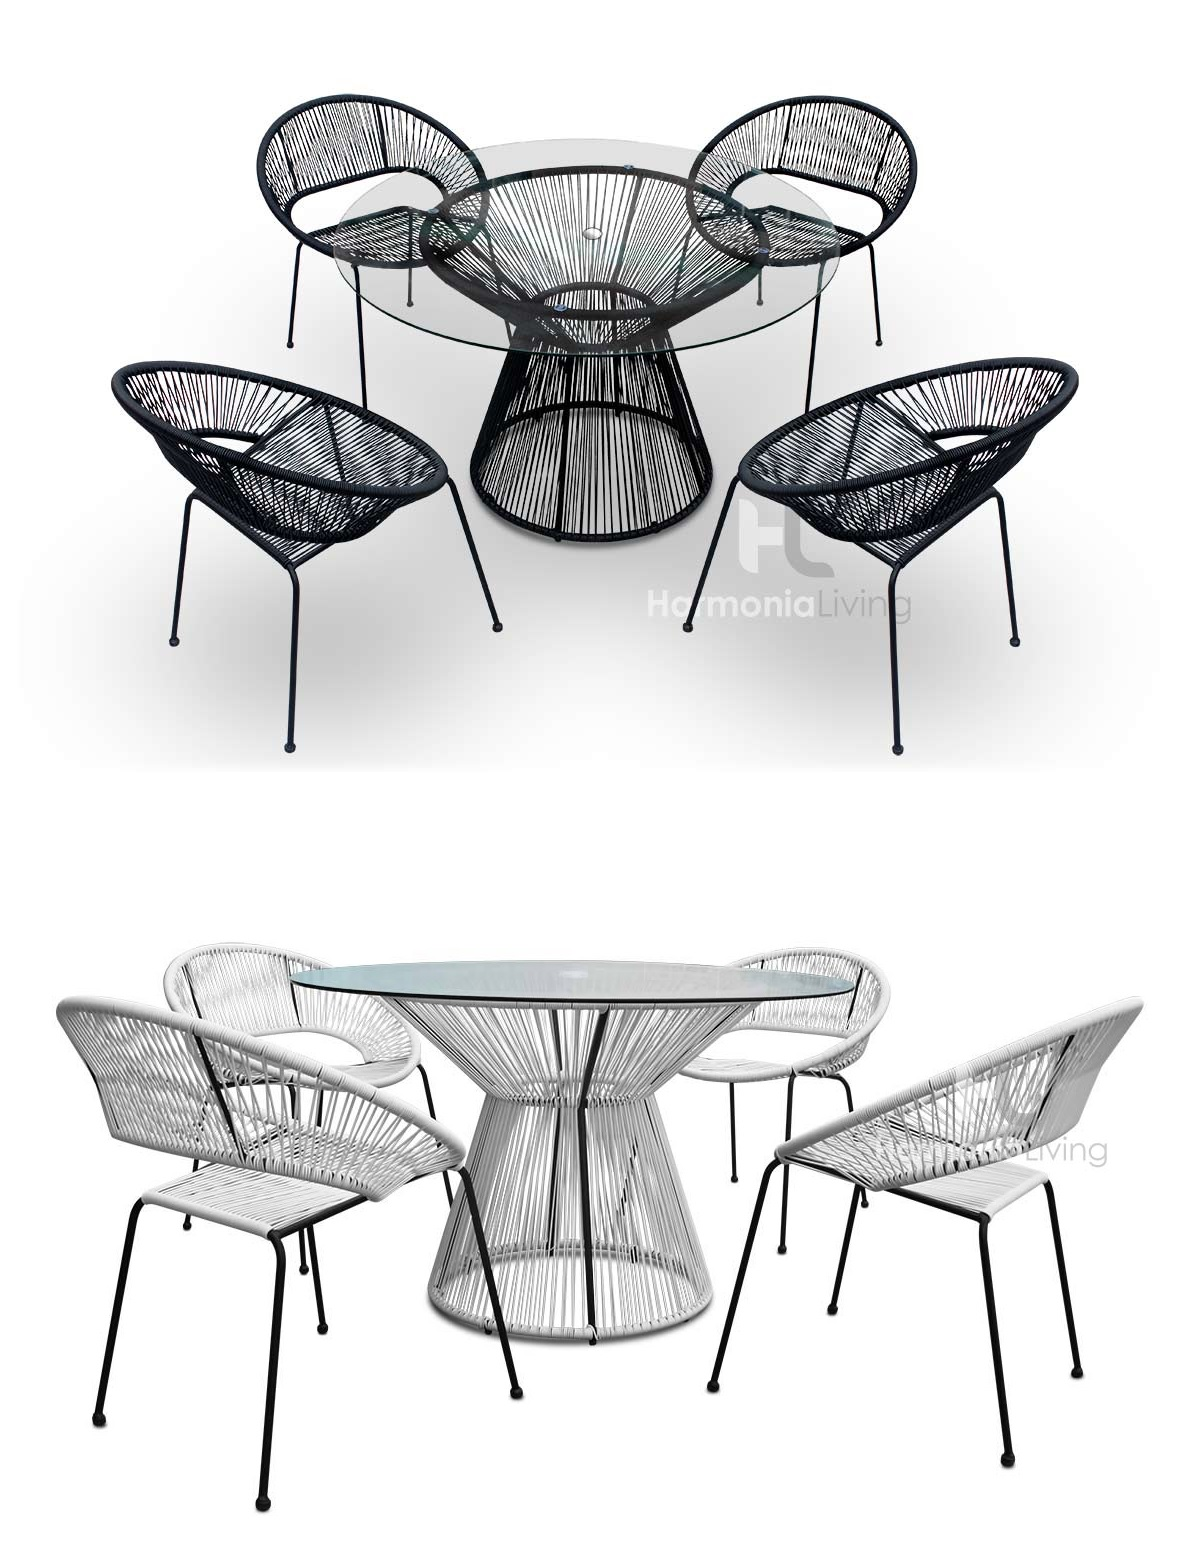 Our Acapulco dining set is a great way to relax outdoors